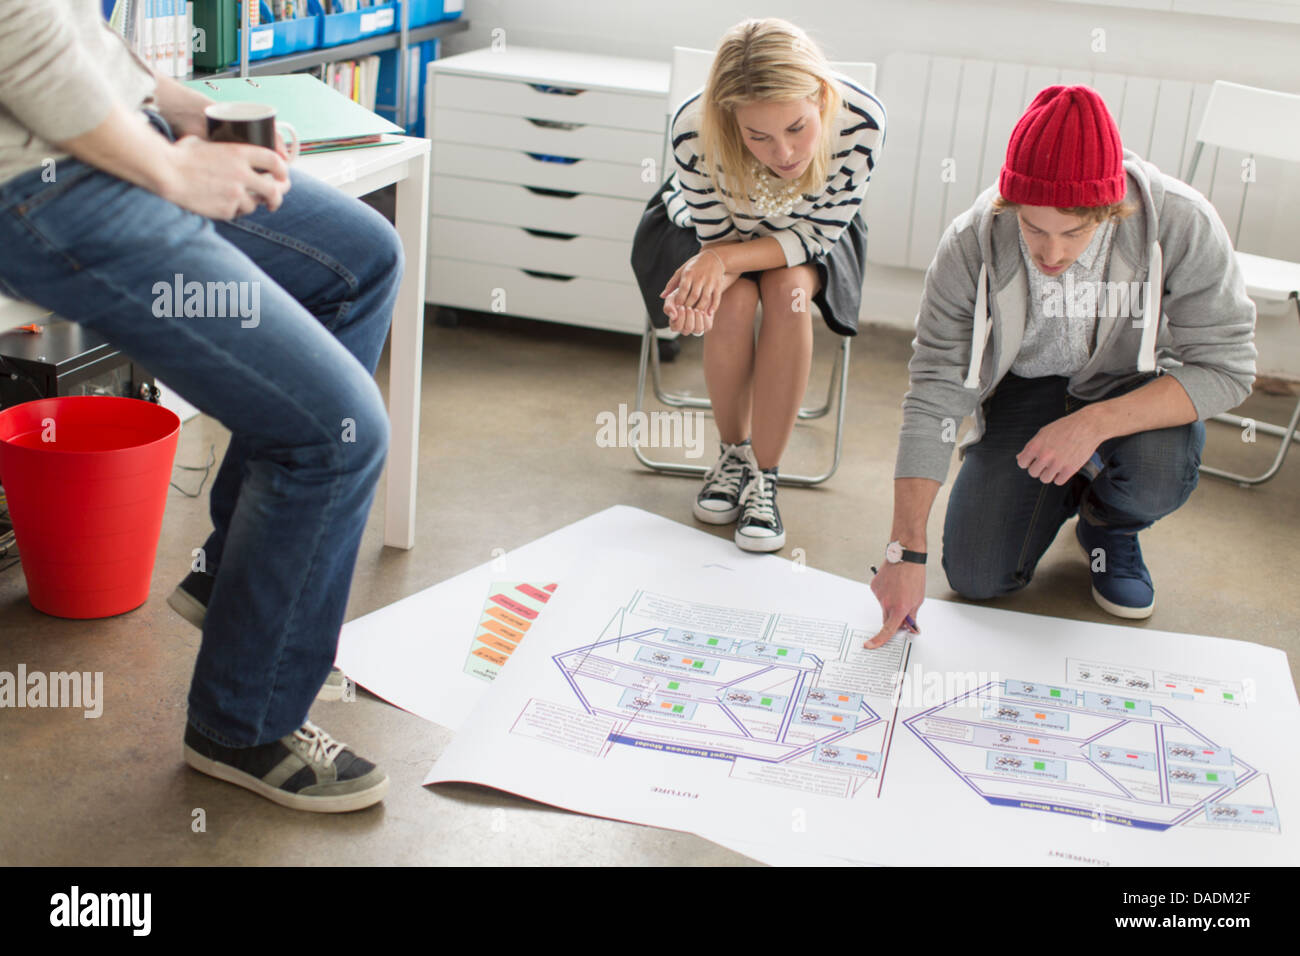 Young office workers discussing plans in creative office - Stock Image